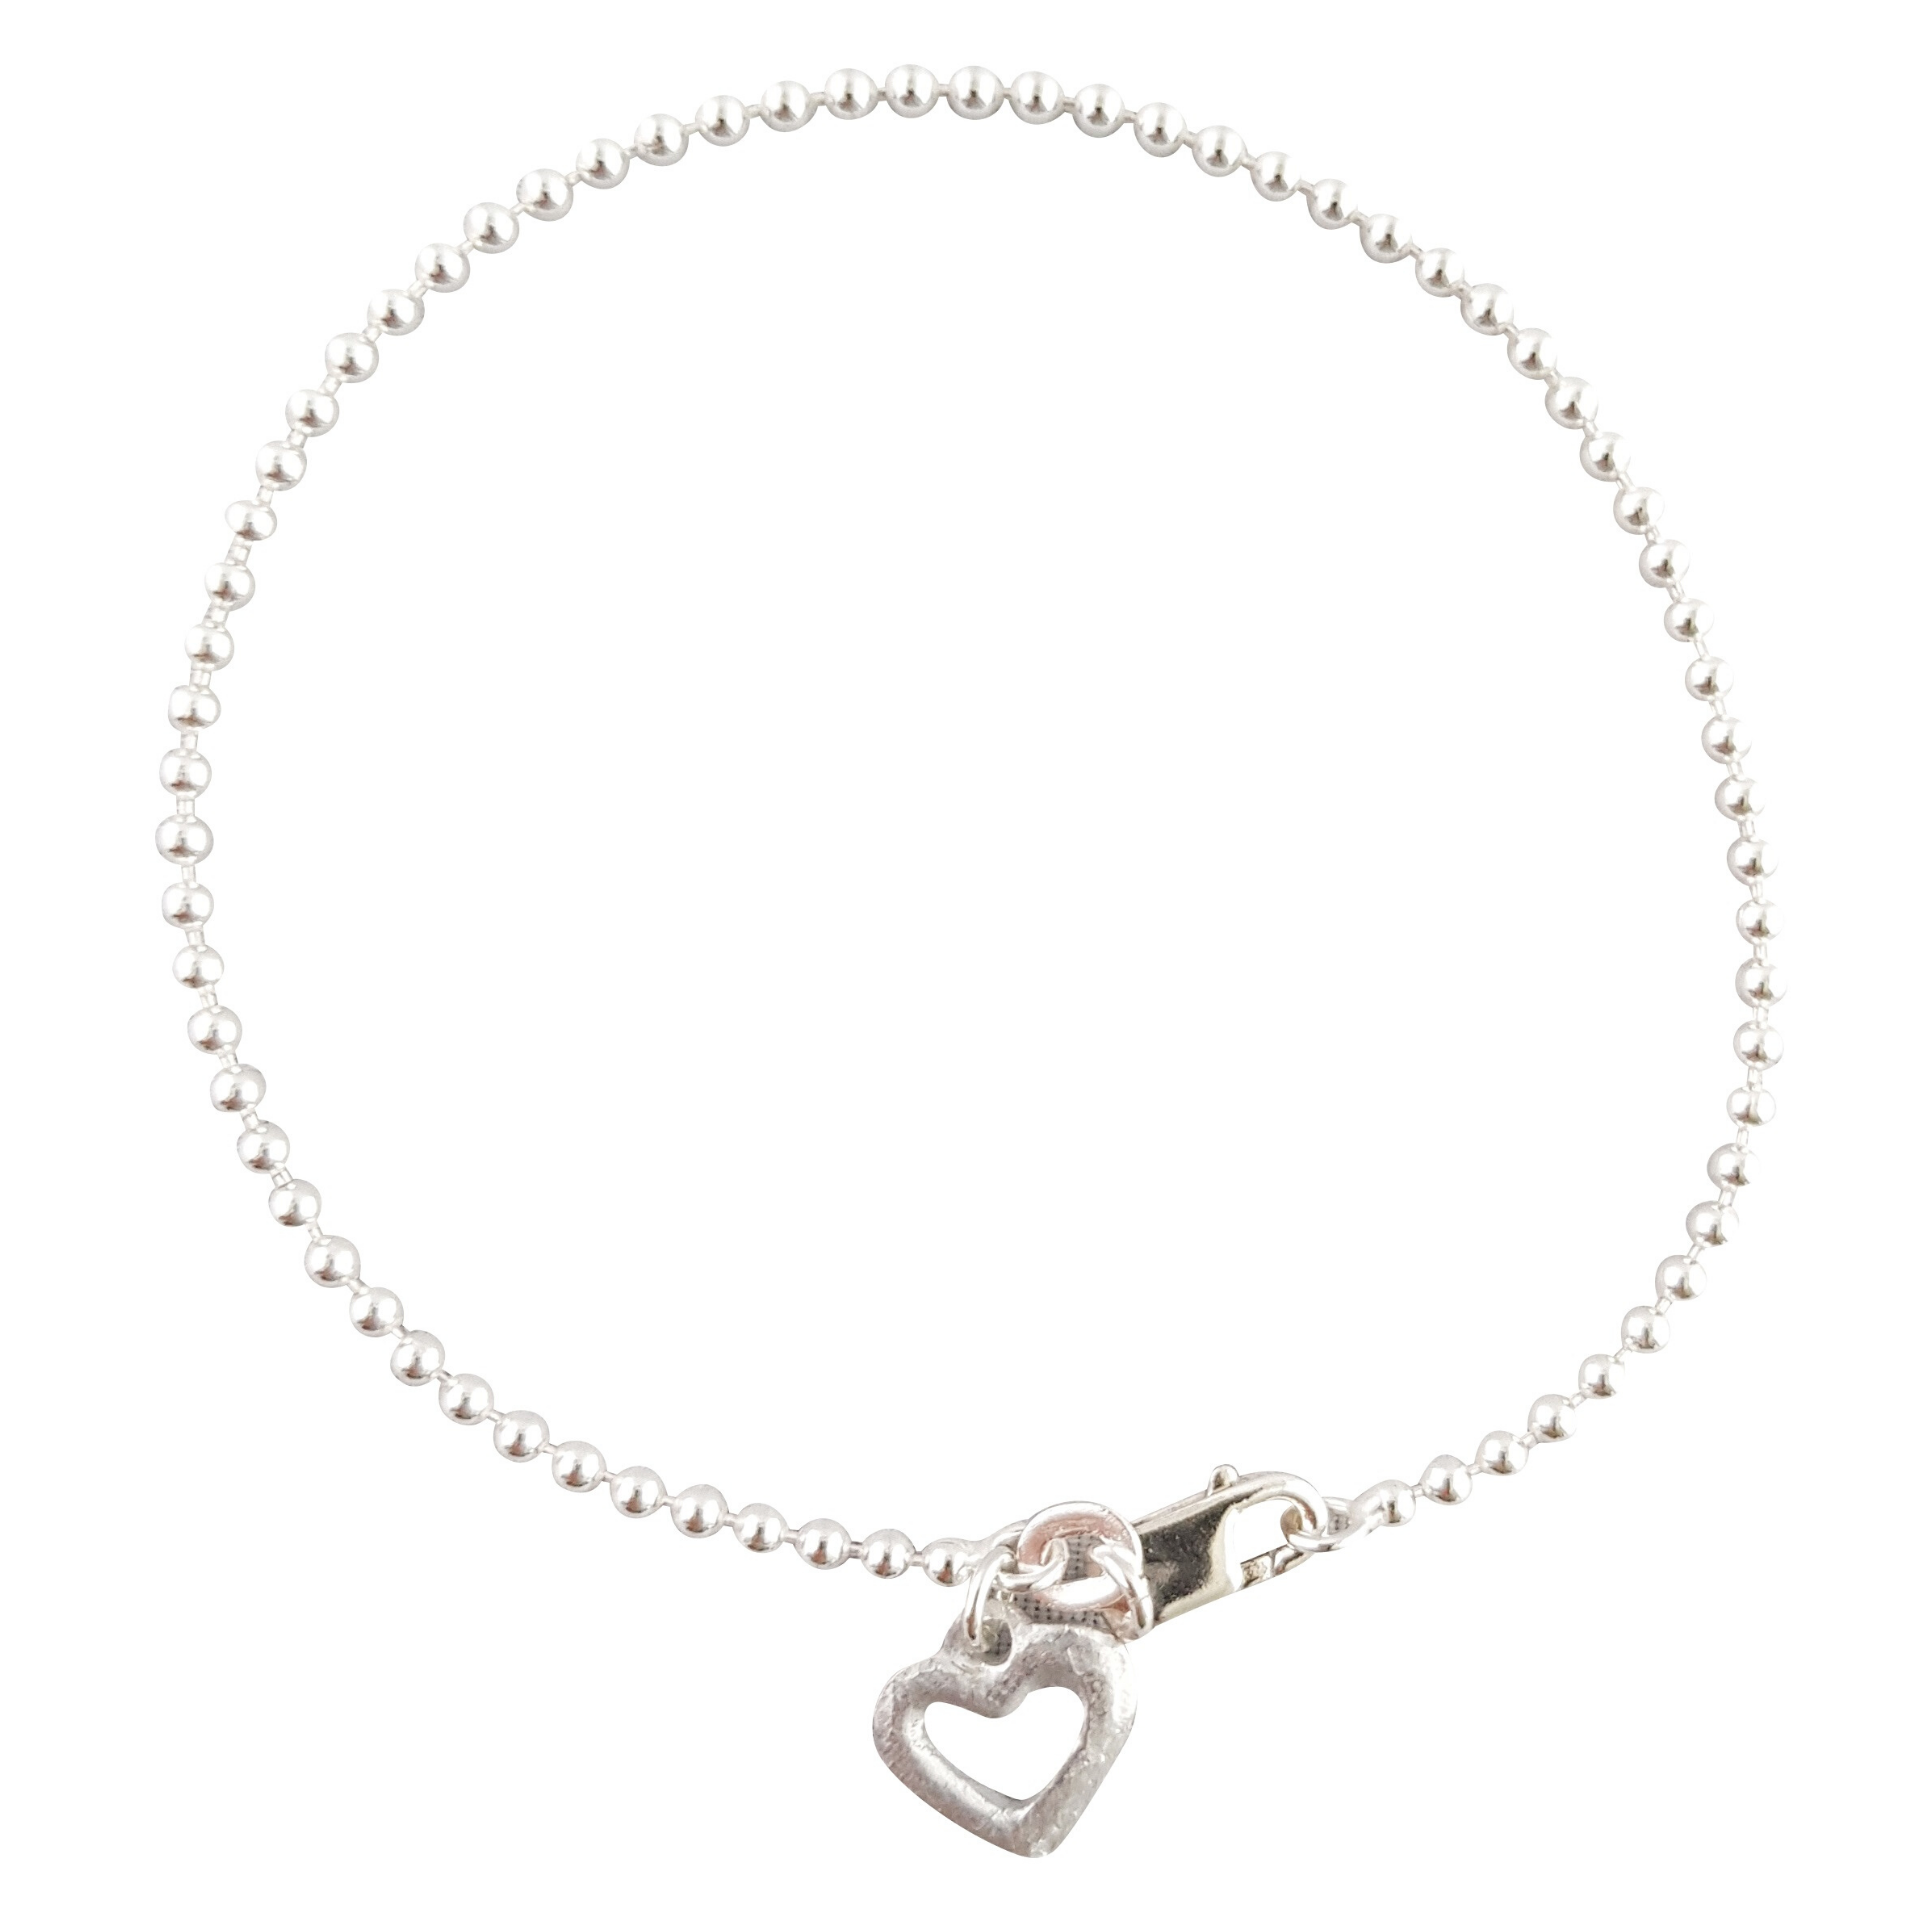 LOVEbomb Sterling Silver Ball and Heart Charm Bracelet